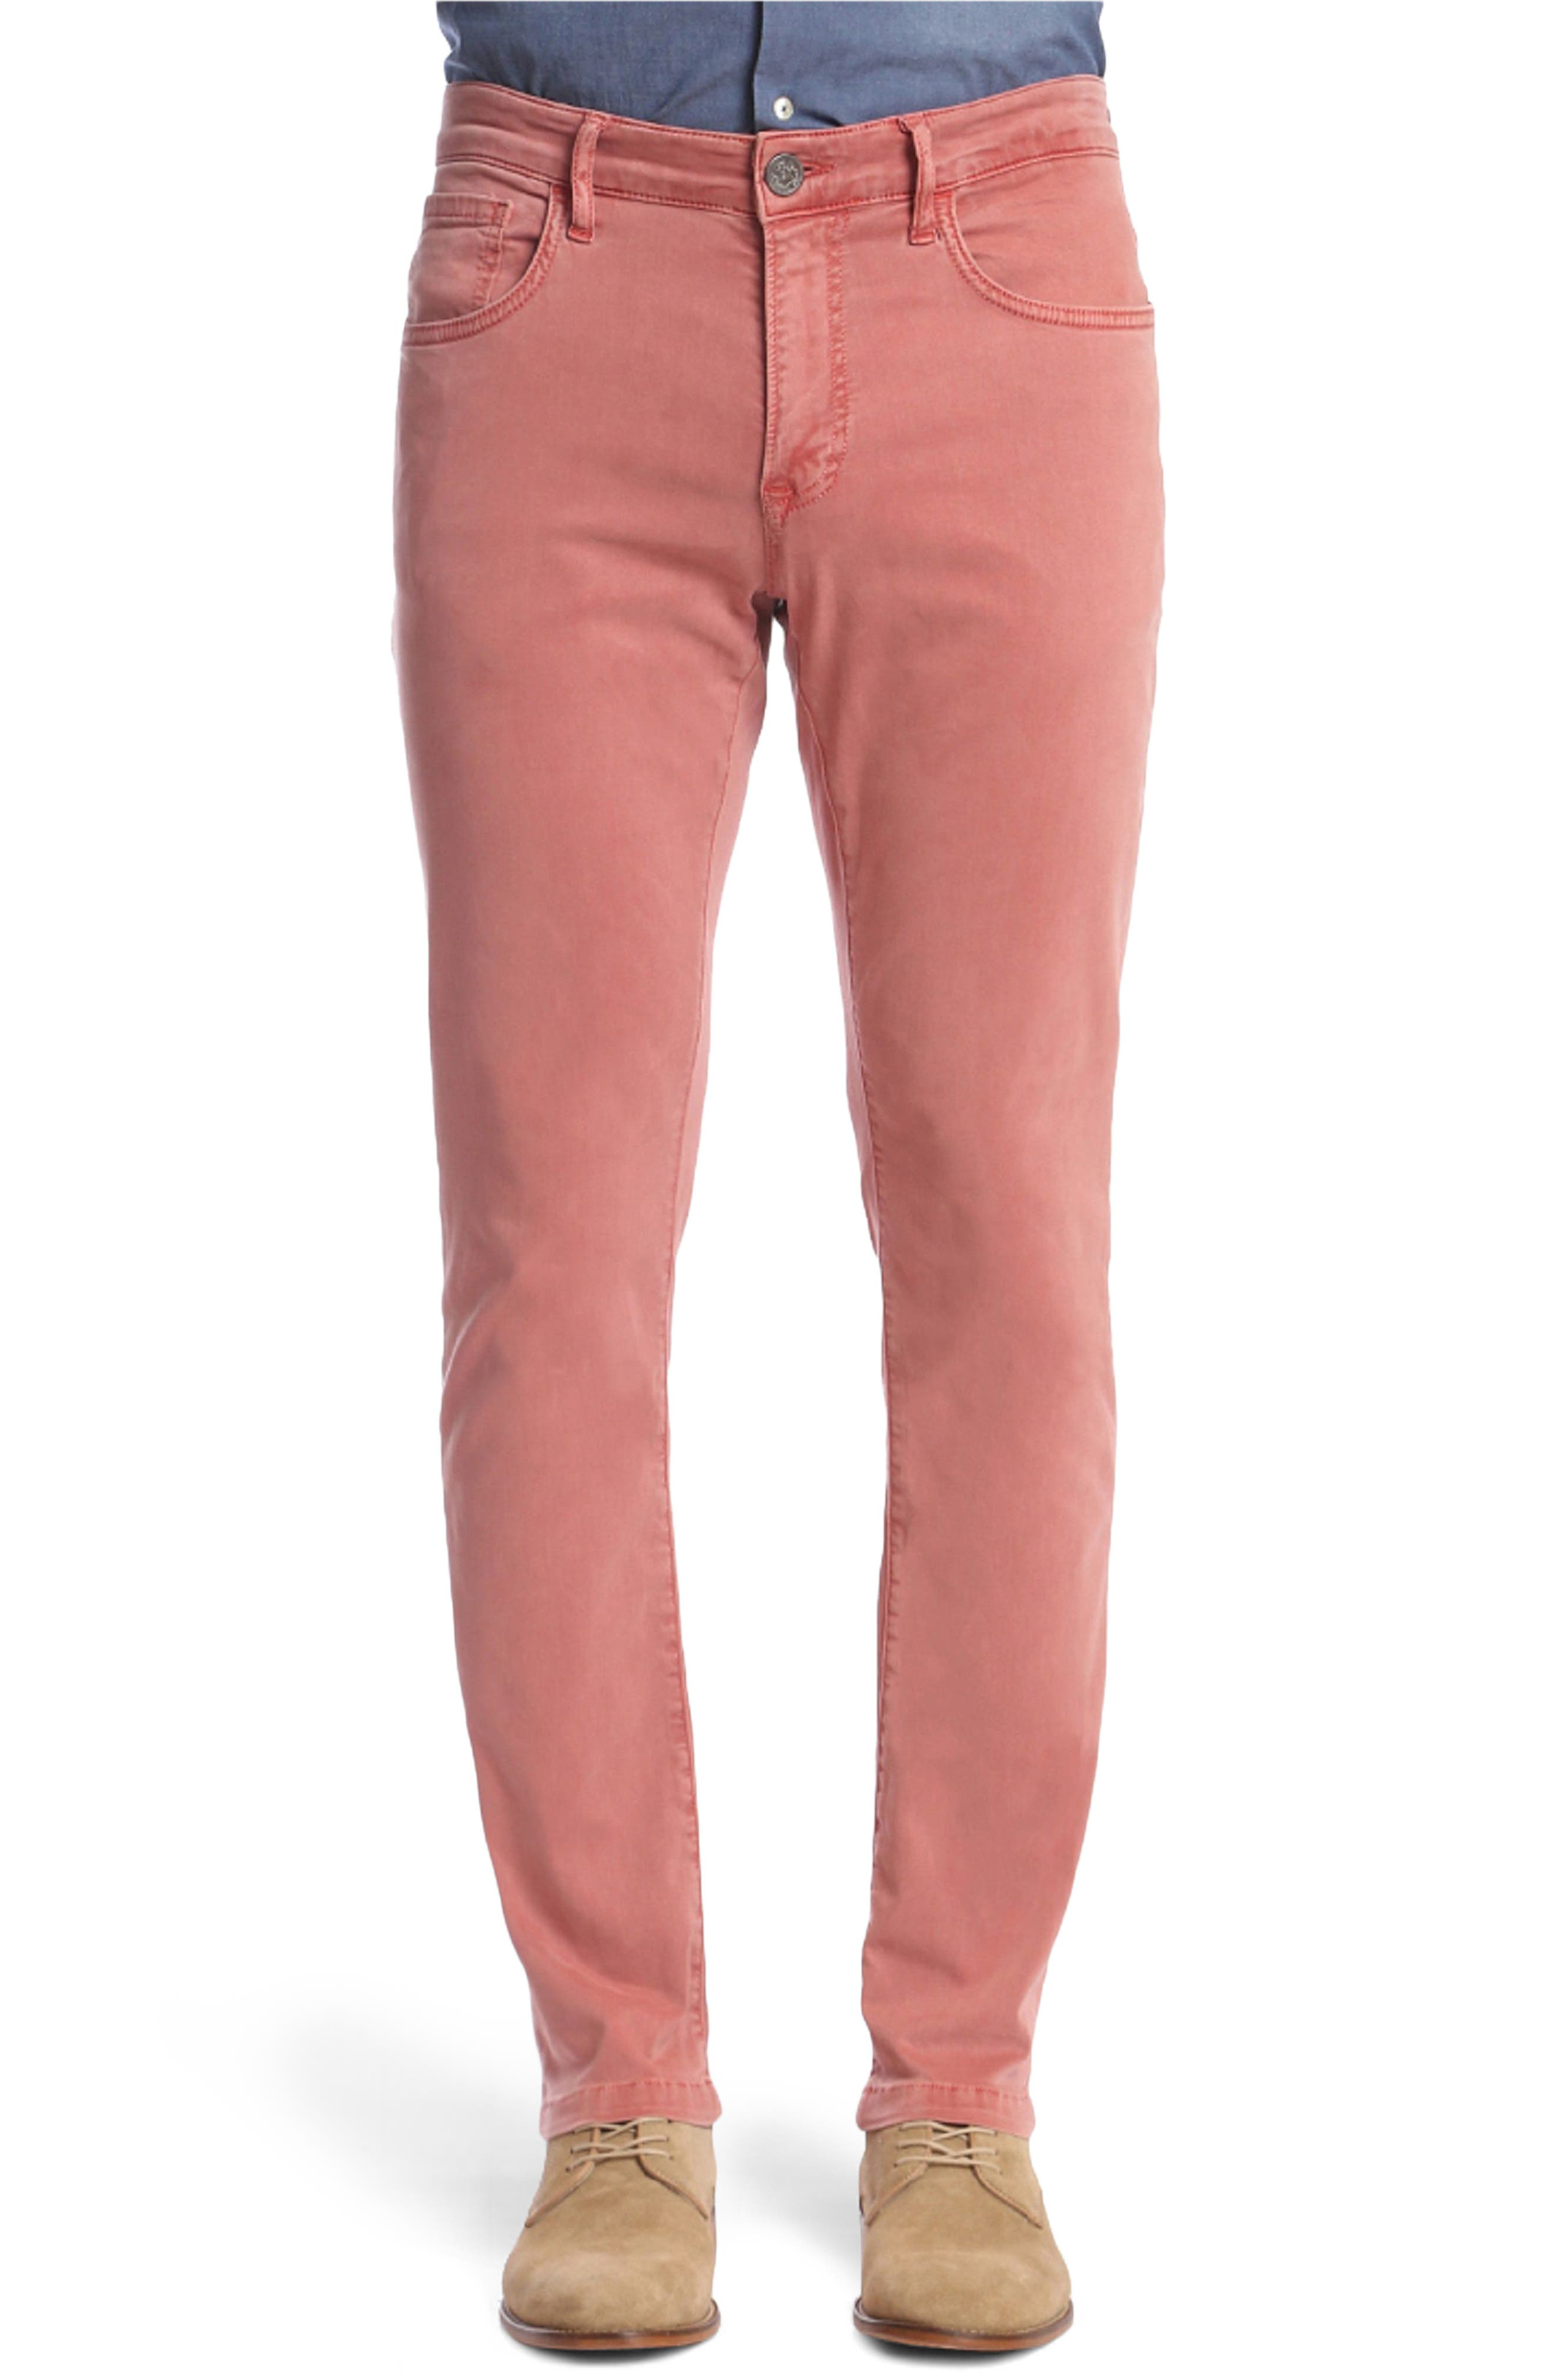 Alternate Image 1 Selected - 34 Heritage Charisma Relaxed Fit Twill Pants (Brick)